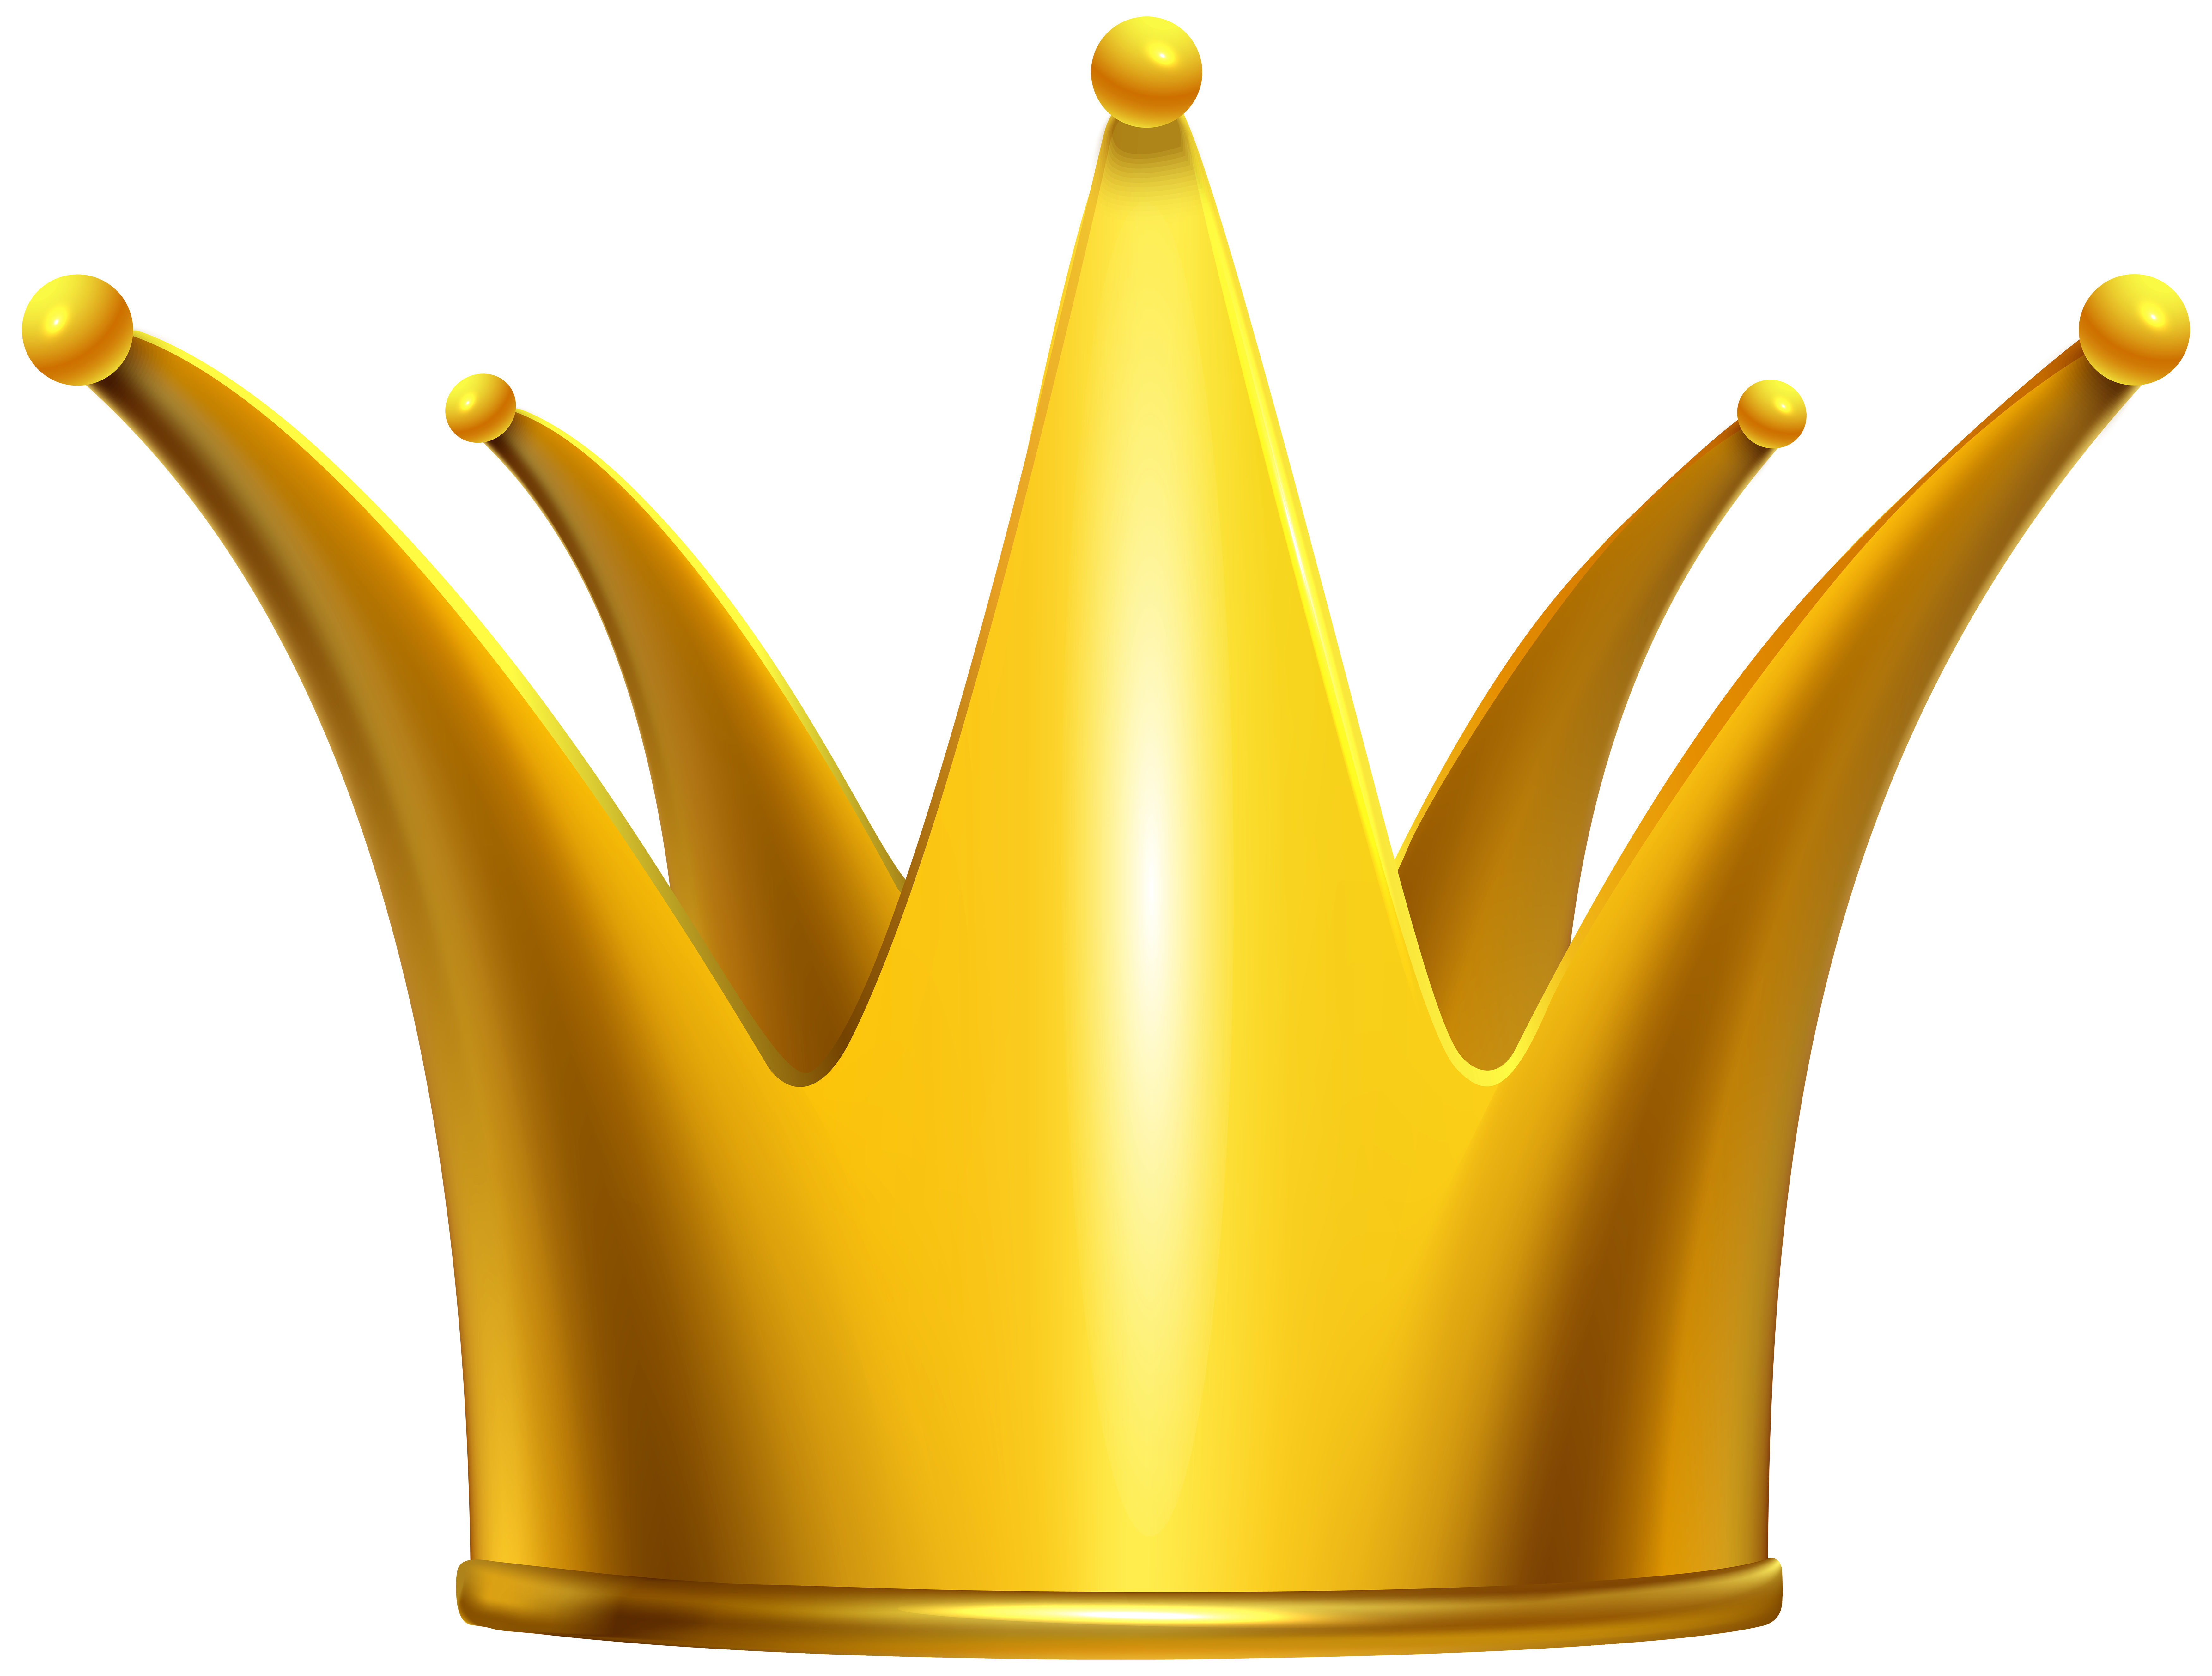 Crown image free download. Crowns clipart yellow